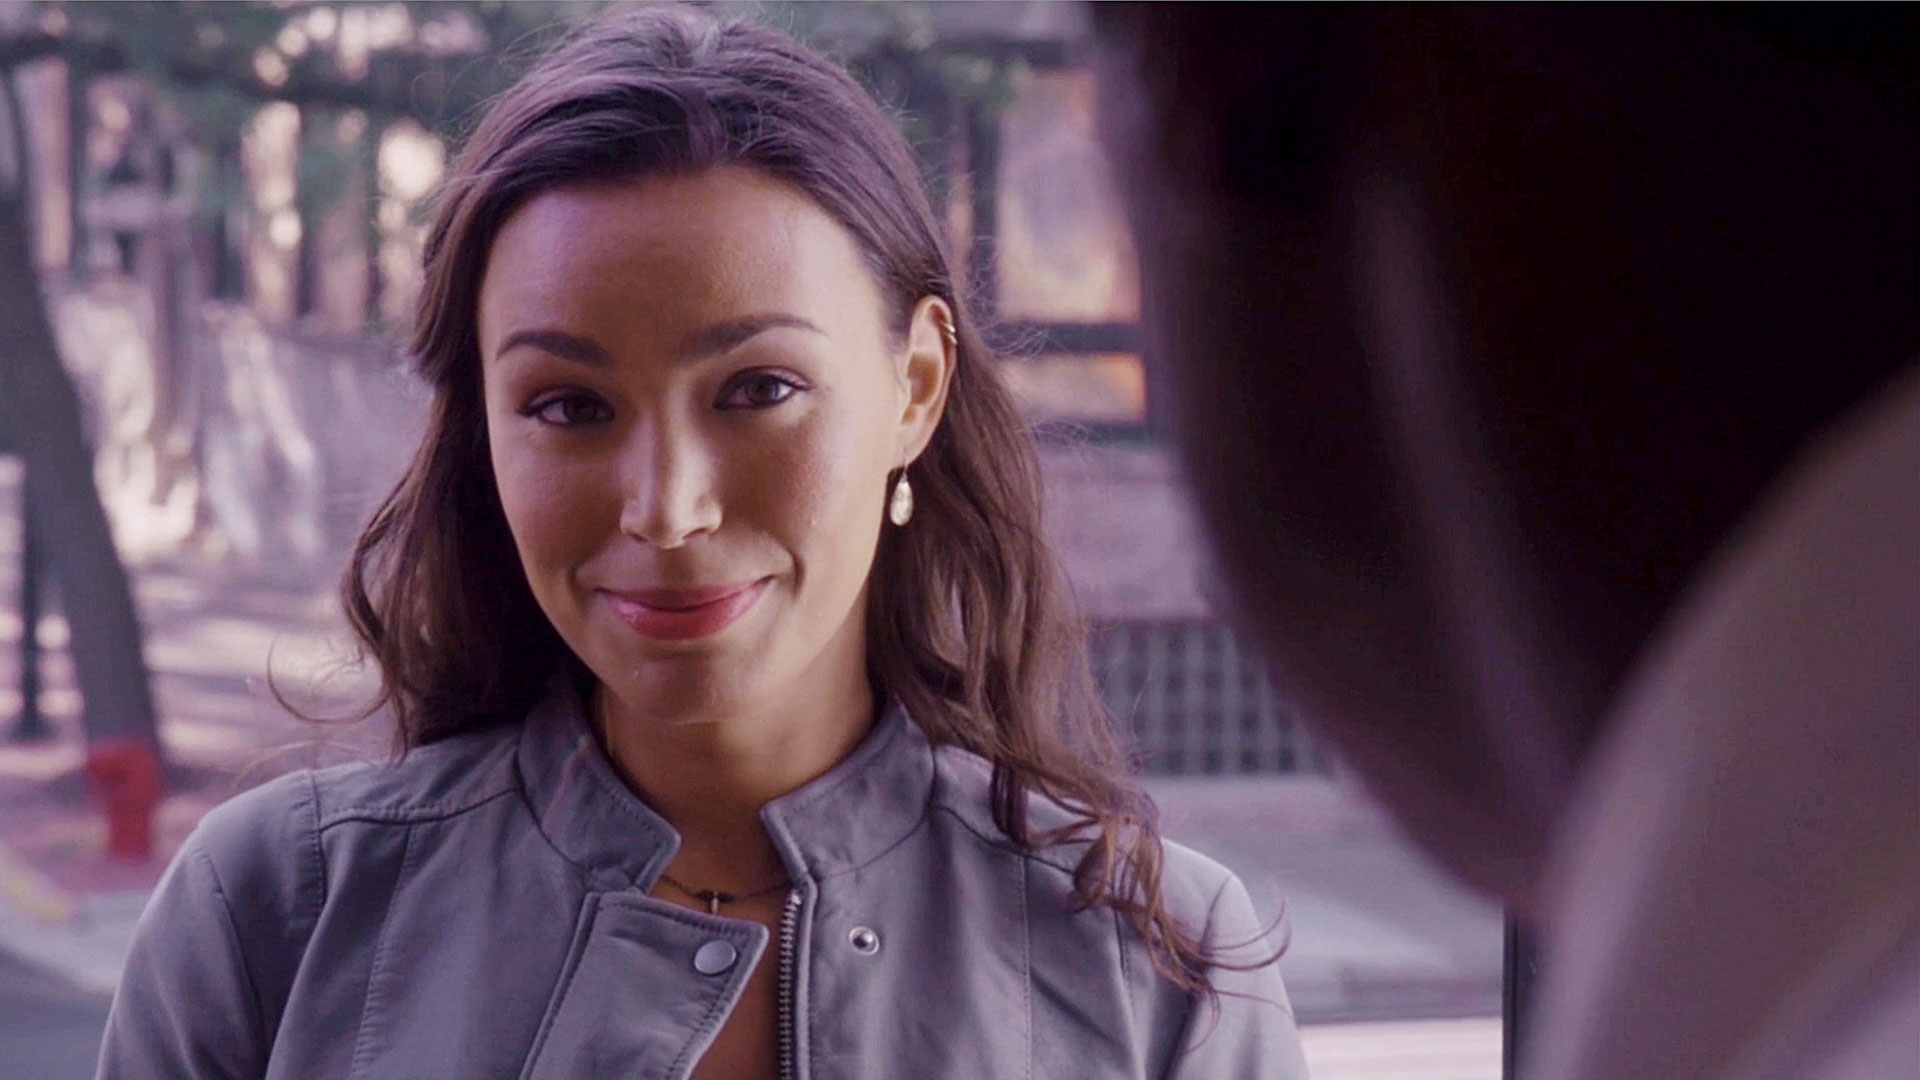 S4_Chicago_Fire_Ilfenesh_Hadera_21_WEB.jpg